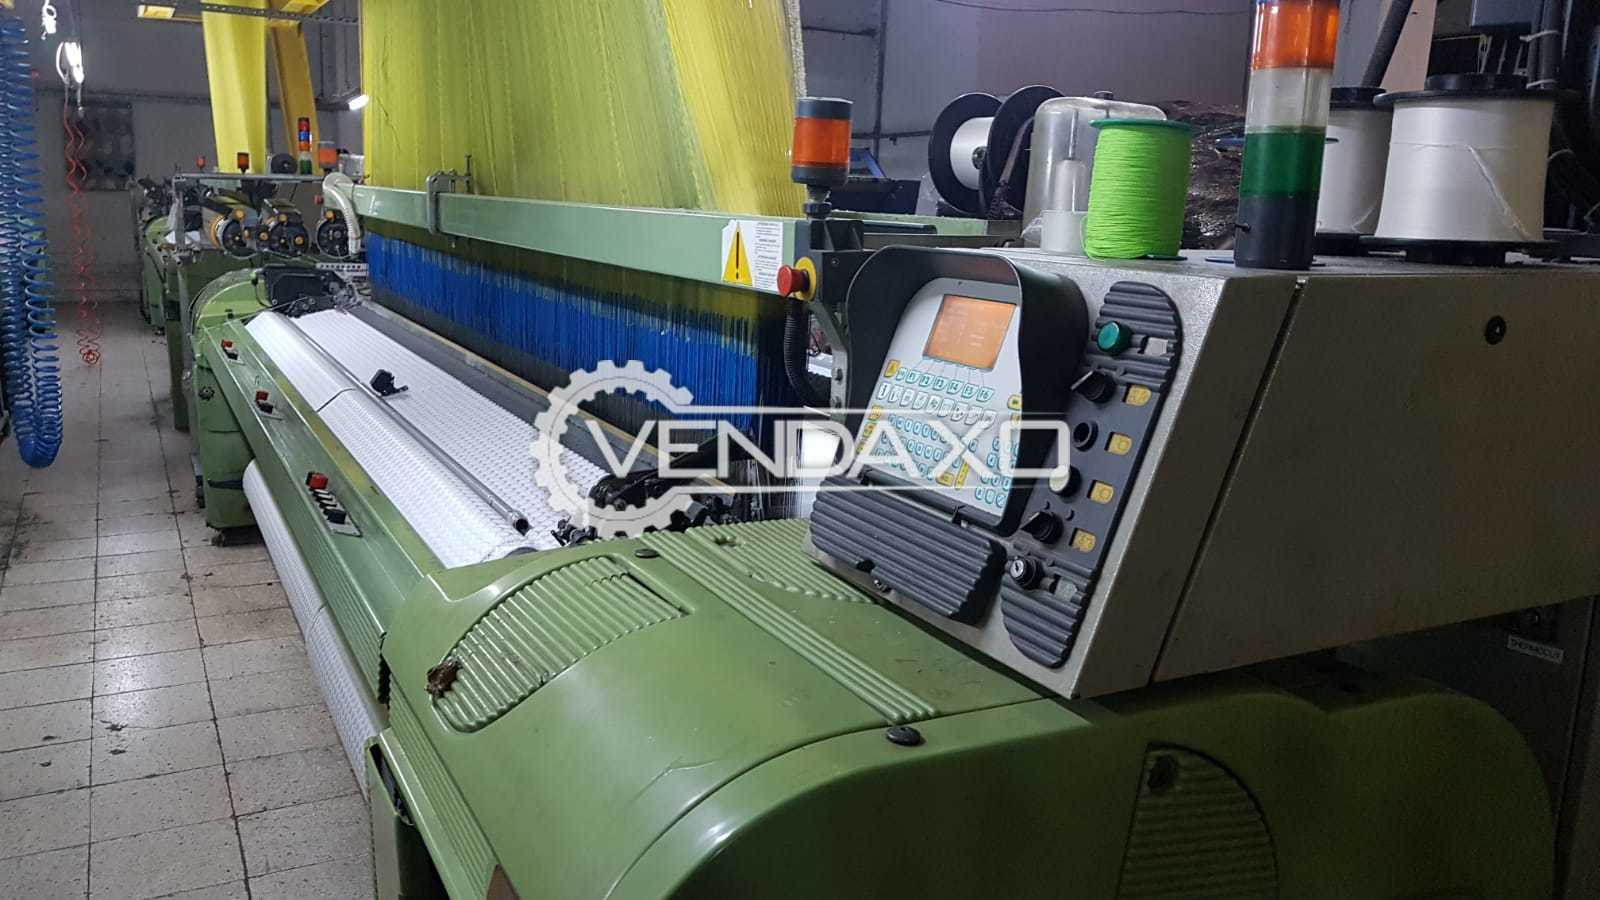 5 Set OF Somet Thema Super Excel Weaving Machine - Width - 3400 mm, 2002 Model